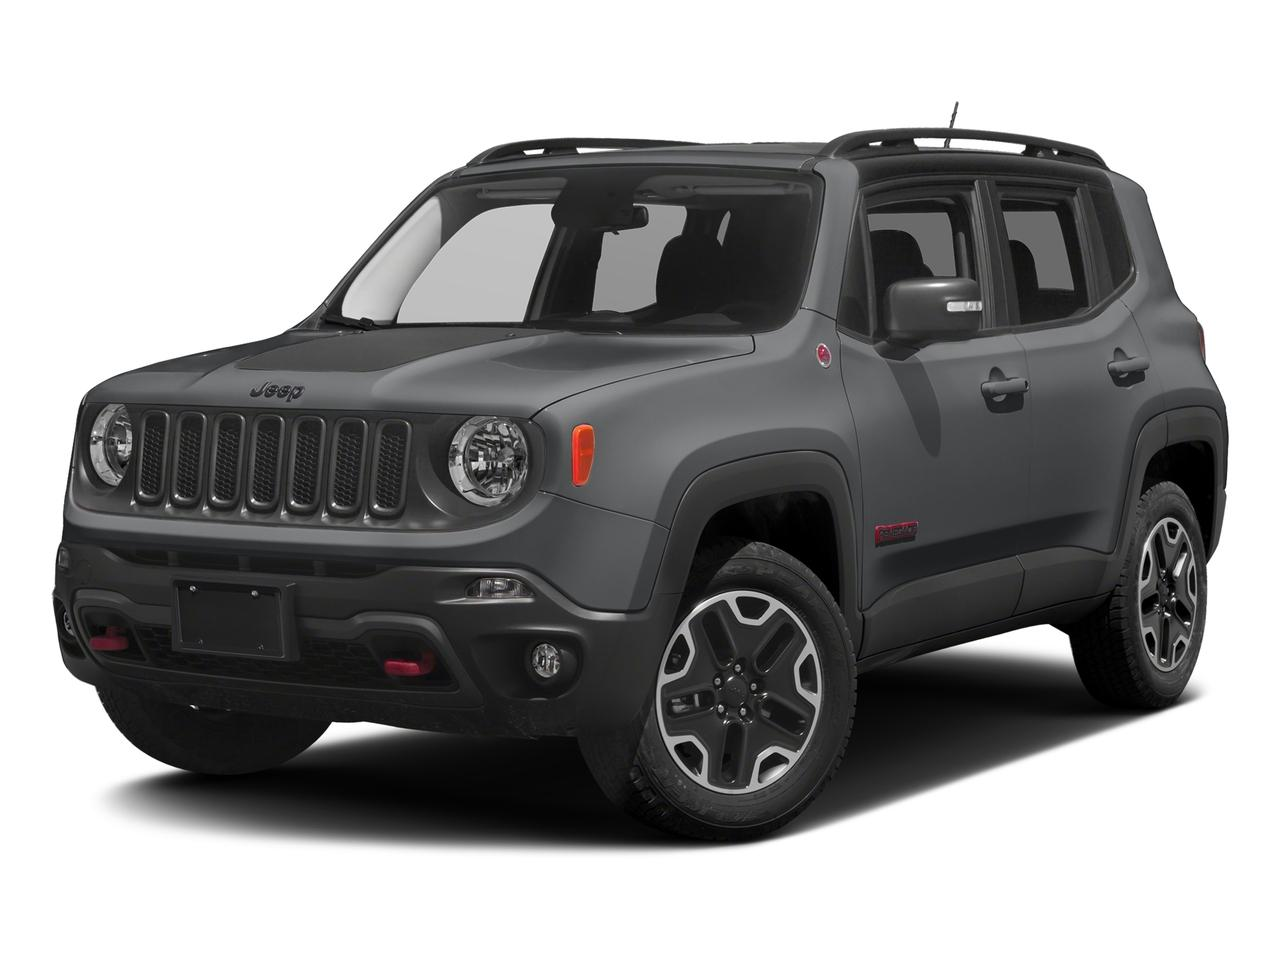 2016 Jeep Renegade Vehicle Photo in Joliet, IL 60435